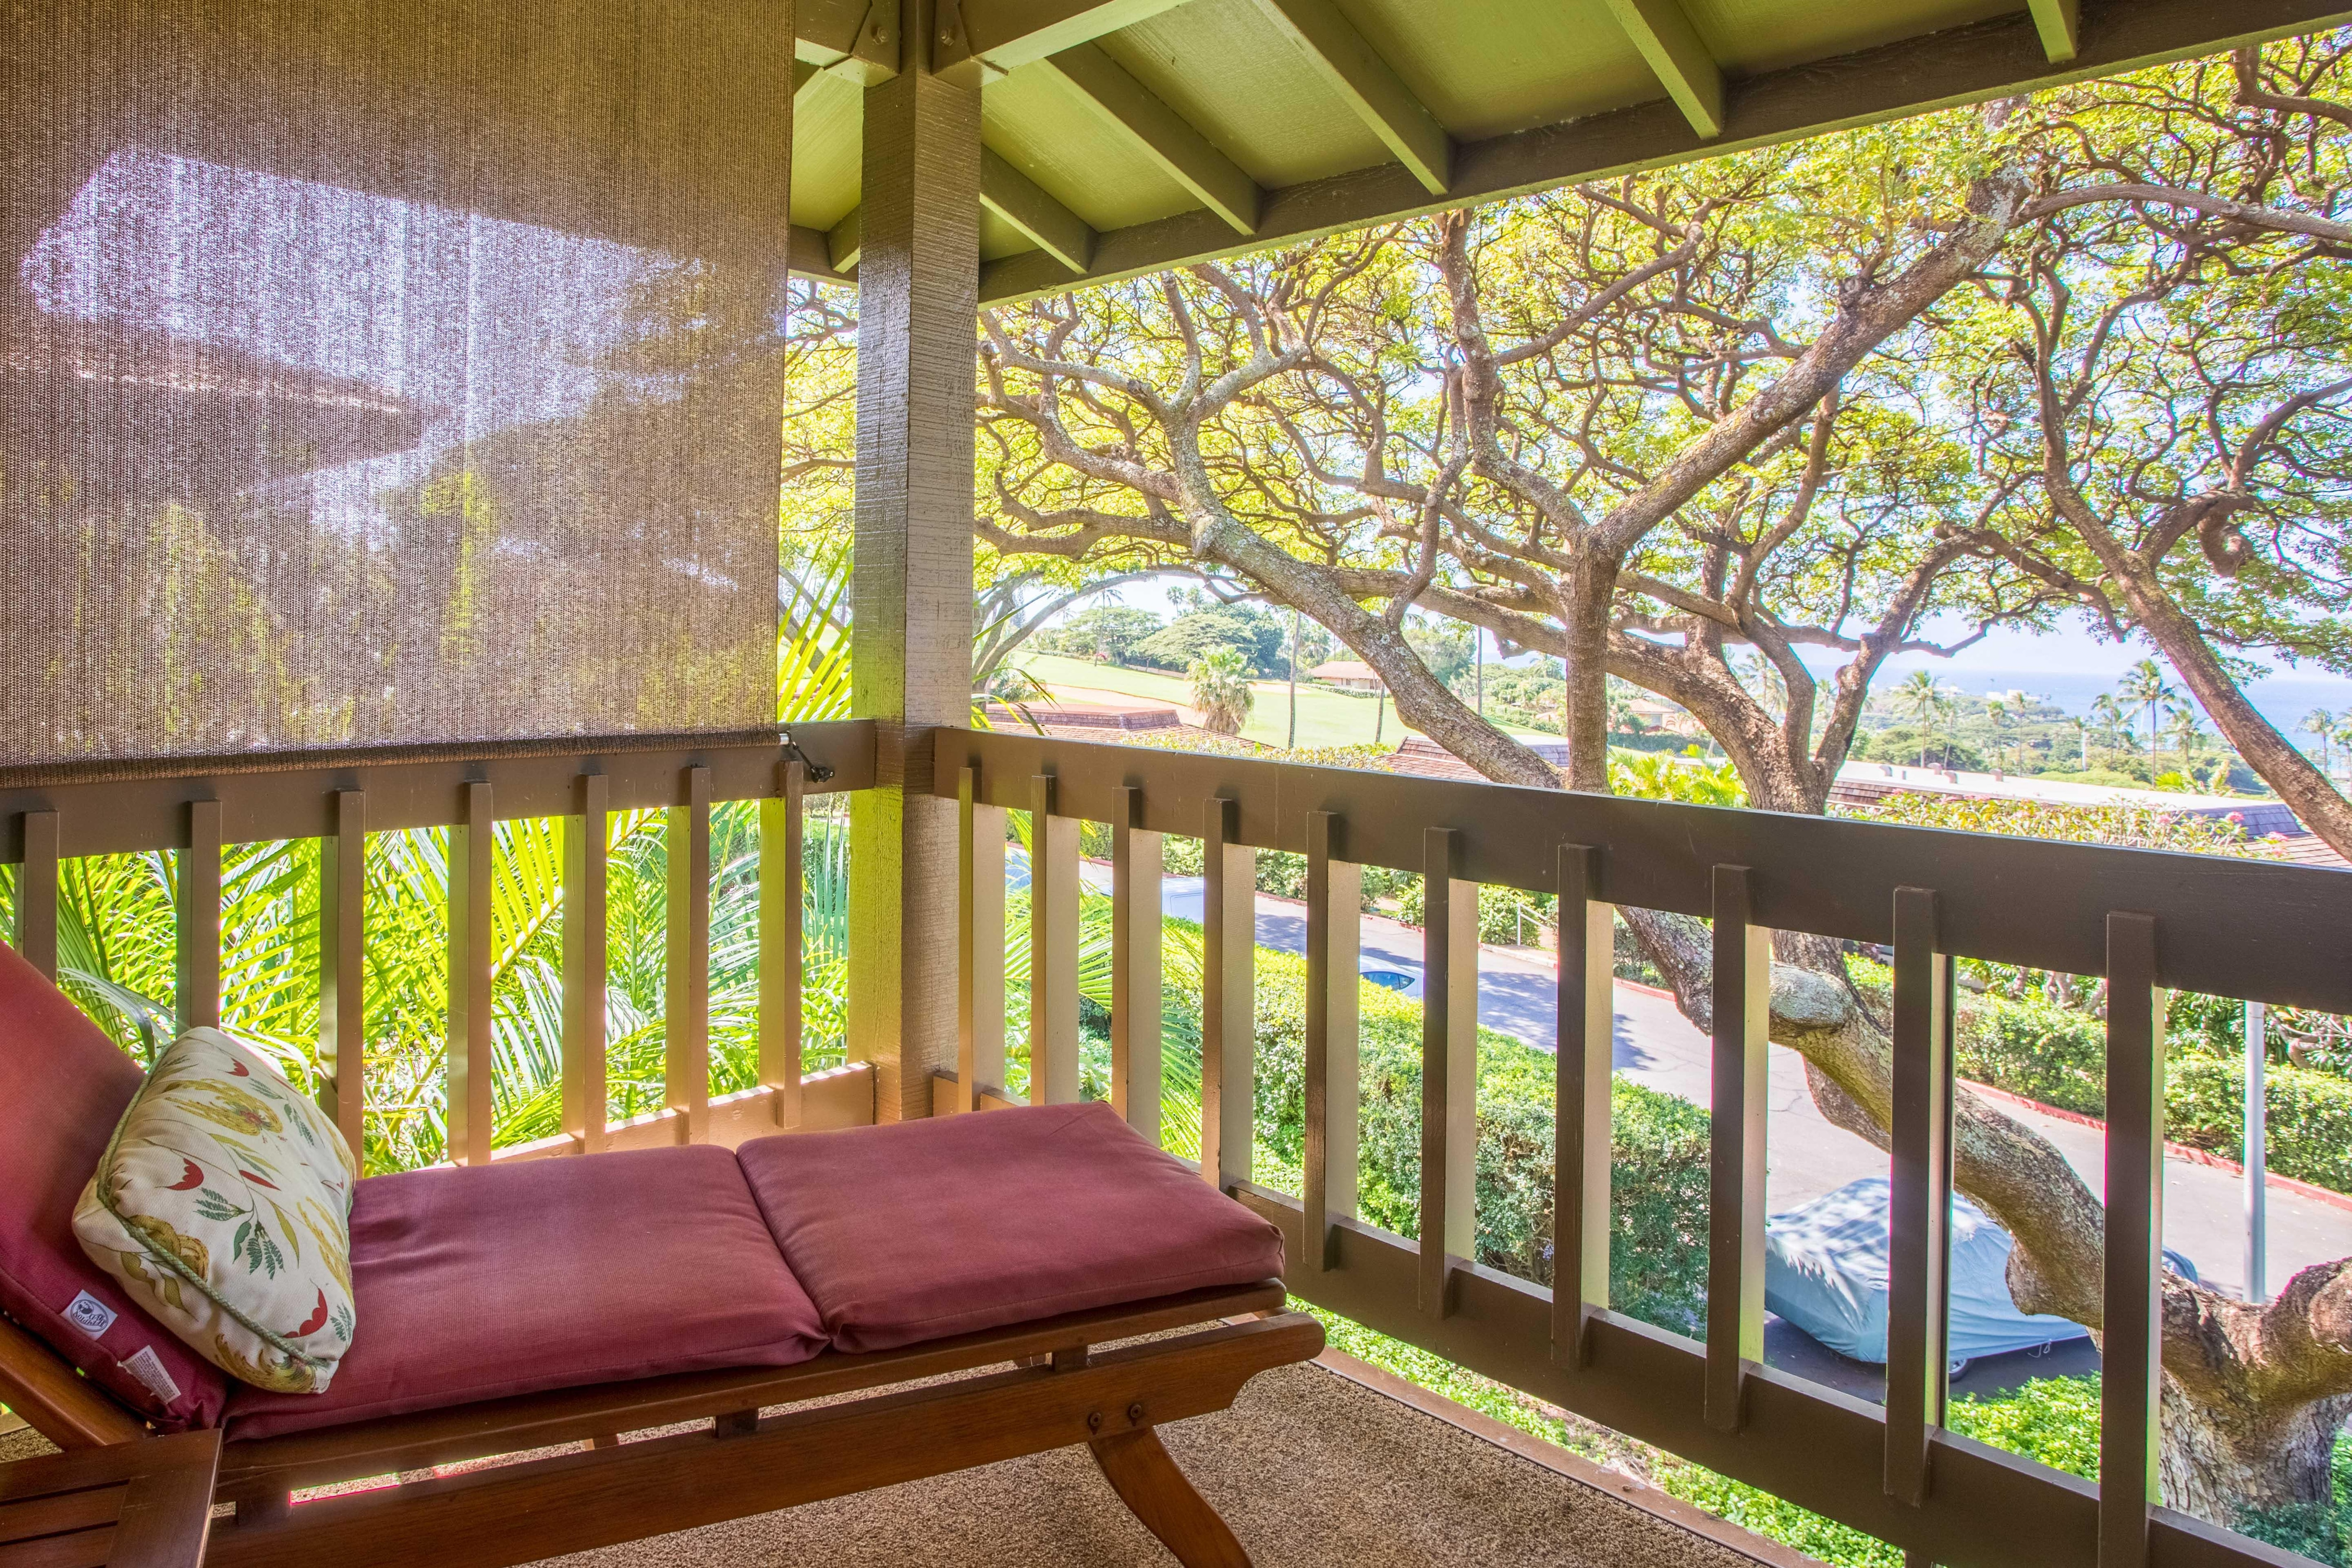 Welcome to Lahaina! Your condo is professionally managed by TurnKey Vacation Rentals.